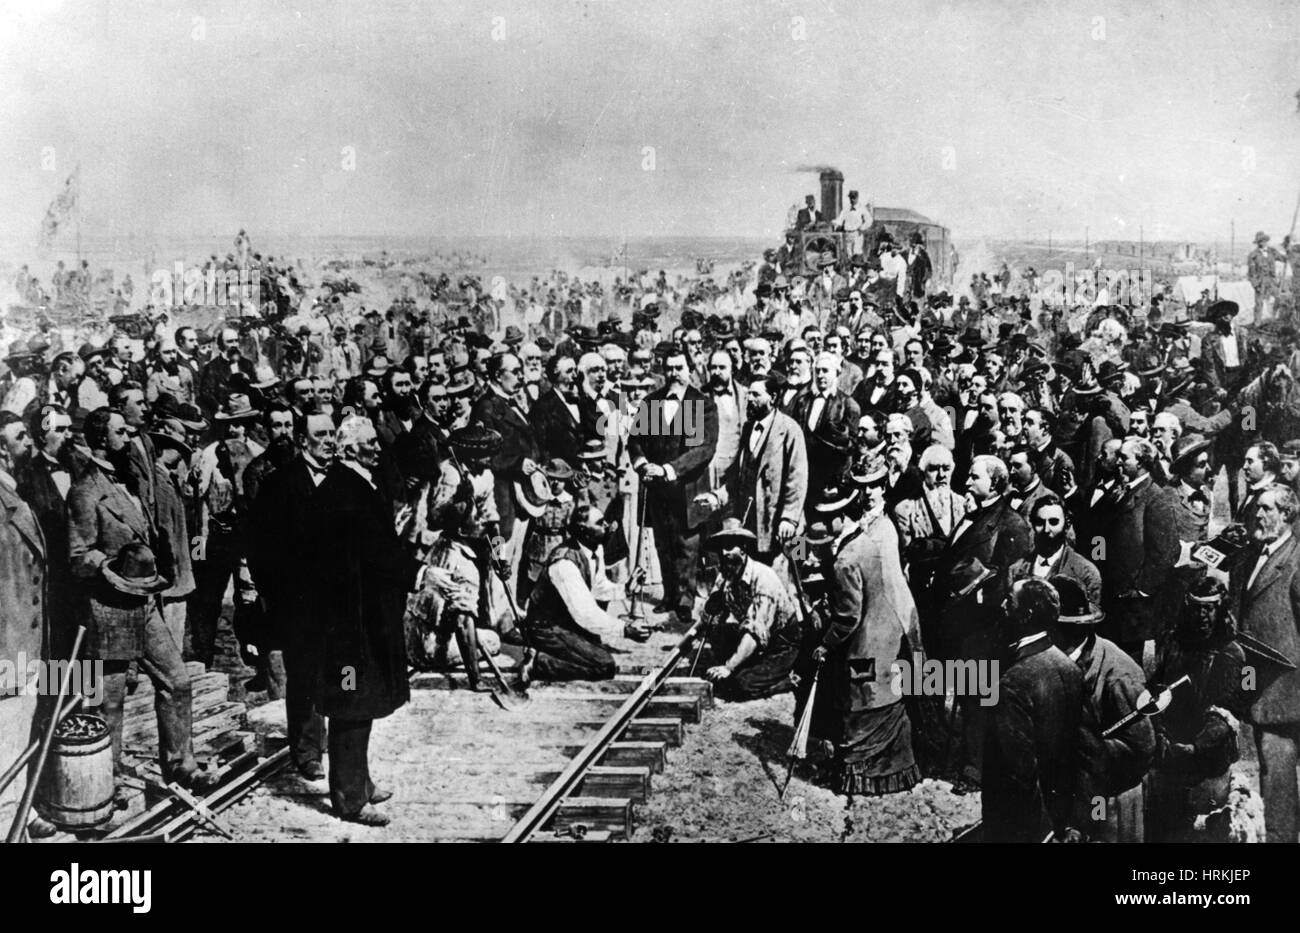 Golden Spike Ceremony, 1869